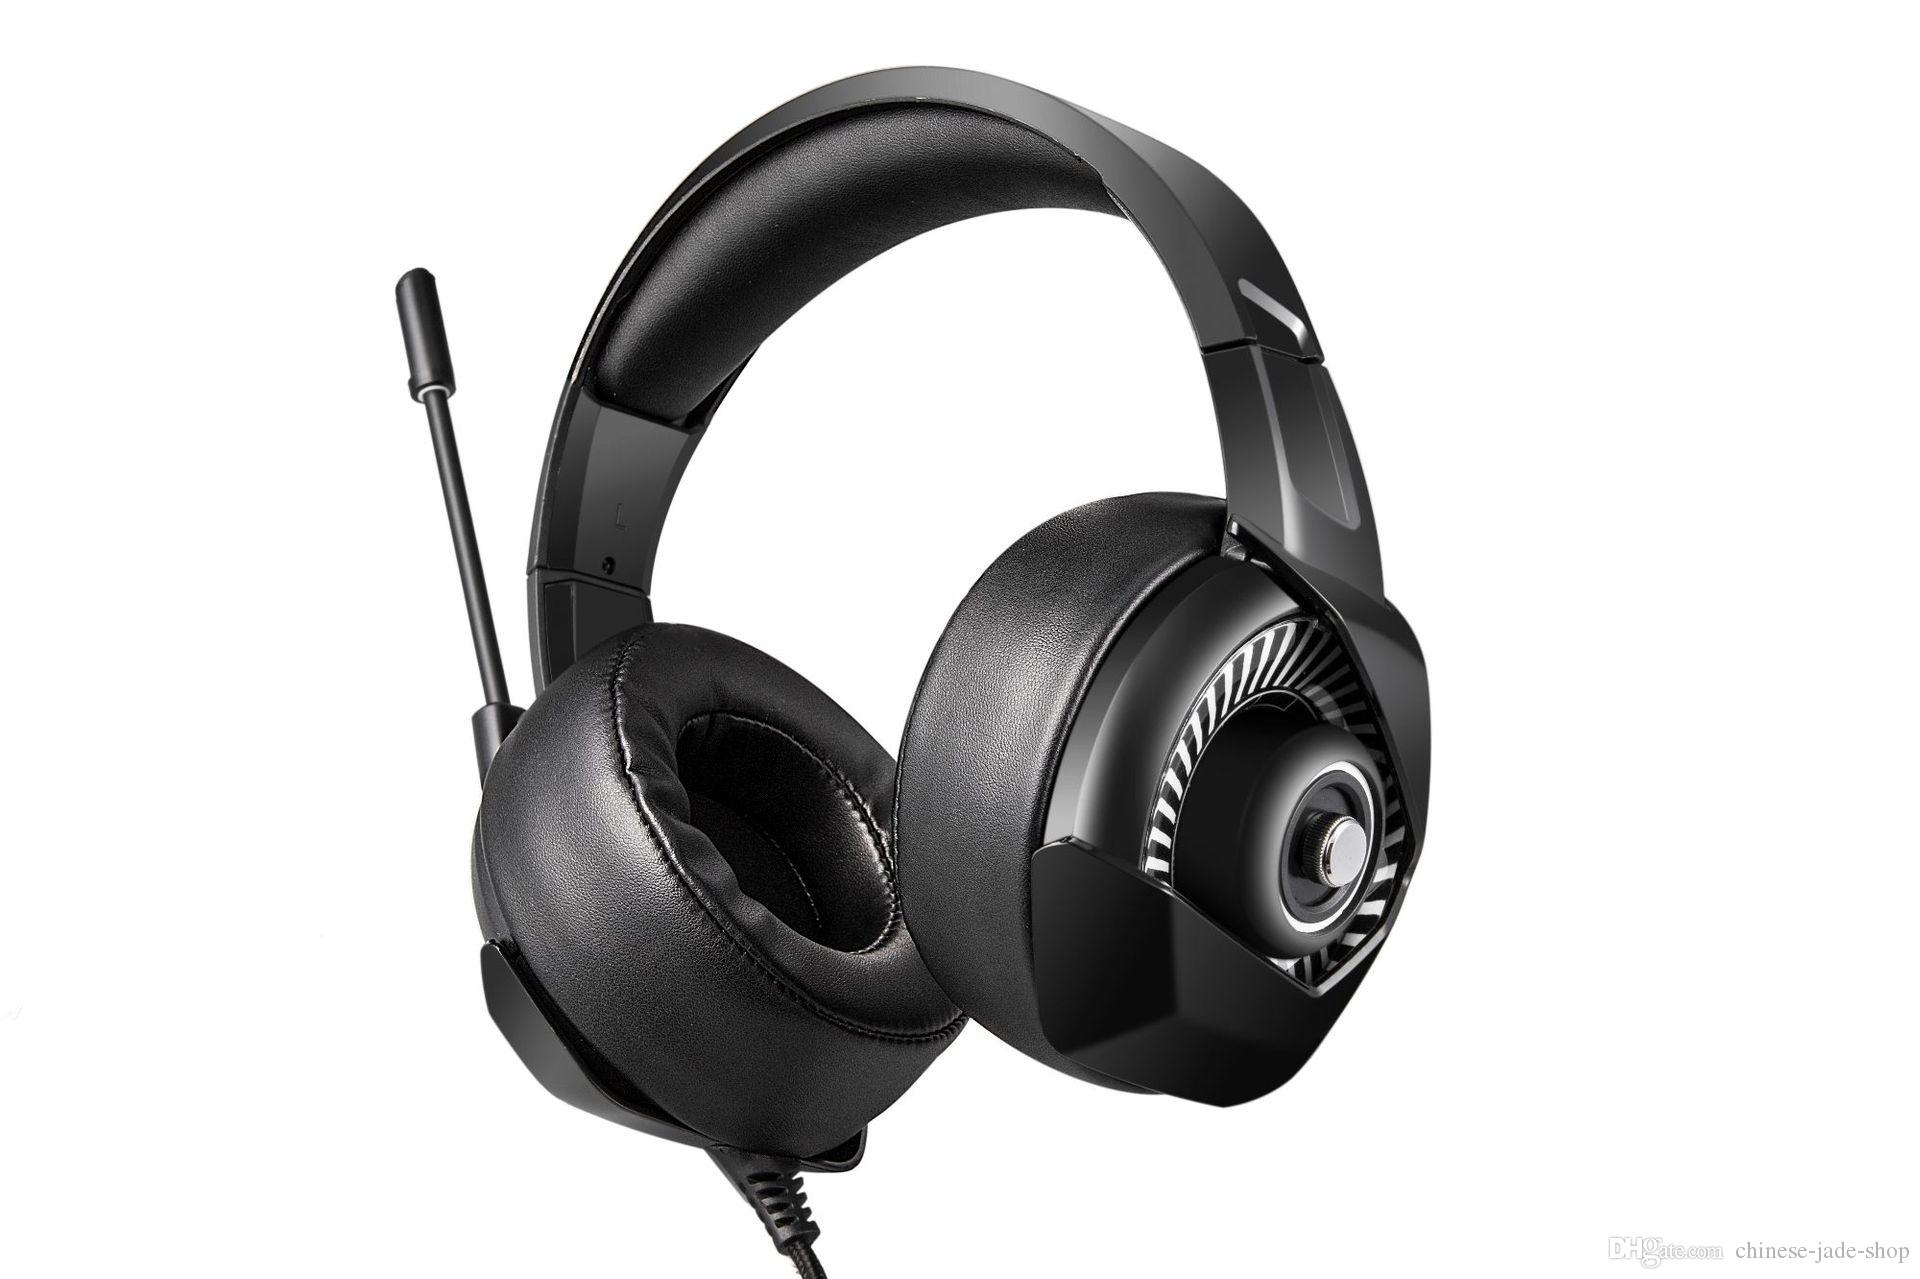 e4244696c29 NIKUMA K6 Stereo Gaming Headset For PS4, PC, Xbox One Controller, Noise  Cancelling Over Ear Headphones With Mic, LED Light, Bass Headphone Amp  Headphone ...